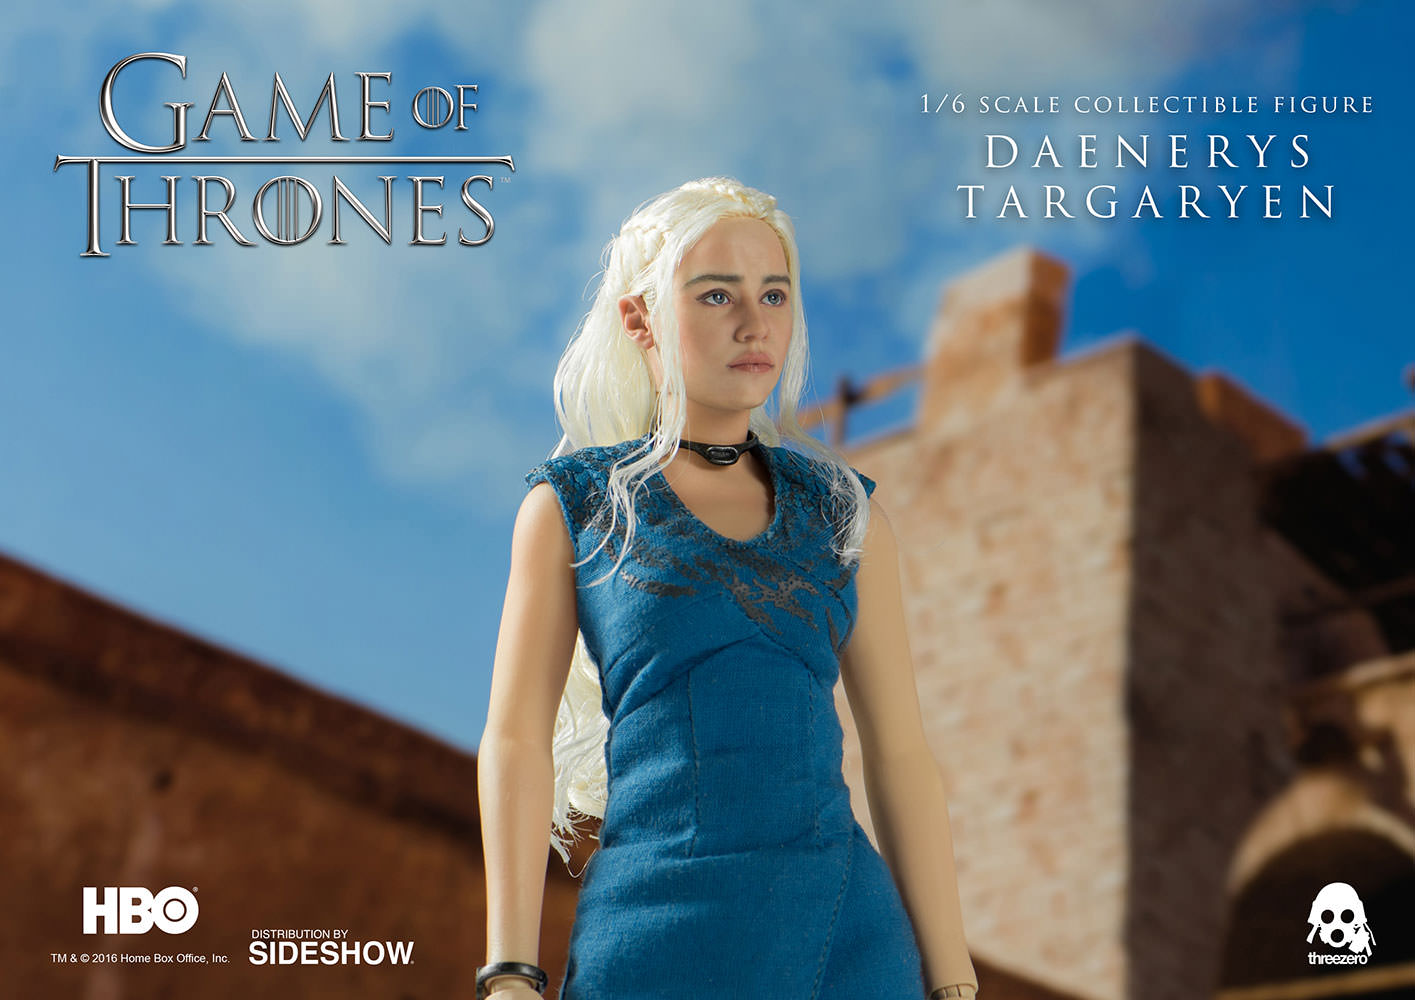 game-of-thrones-daenerys-targaryen-sixth-scale-figure-threezero-902928-12 Figurine - Game of Thrones - Daenerys